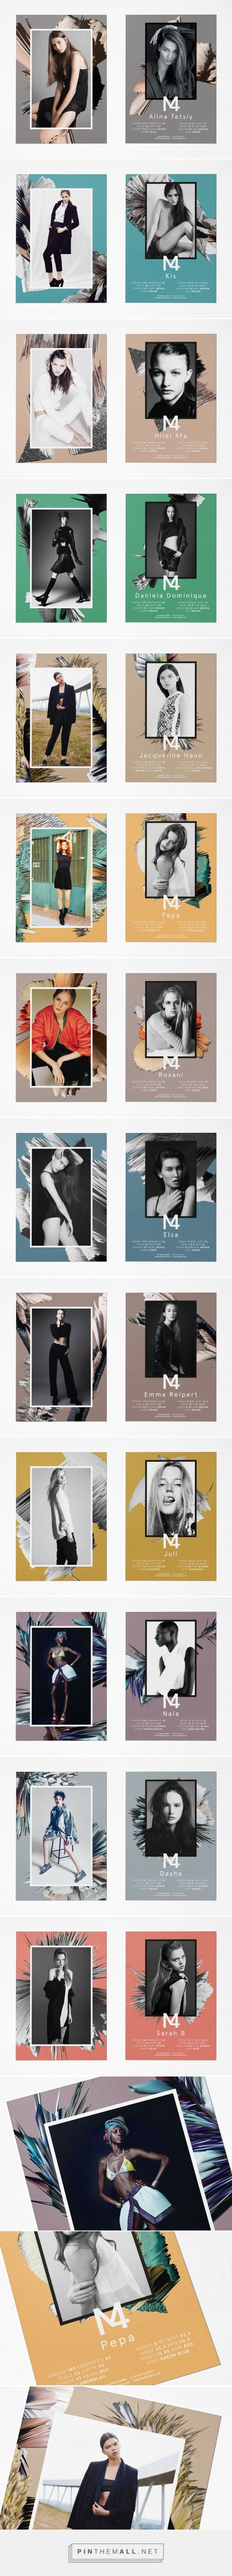 M4 Models SedCards Winter 2015 | Eps51 graphic design studio (Top Design Fashion)